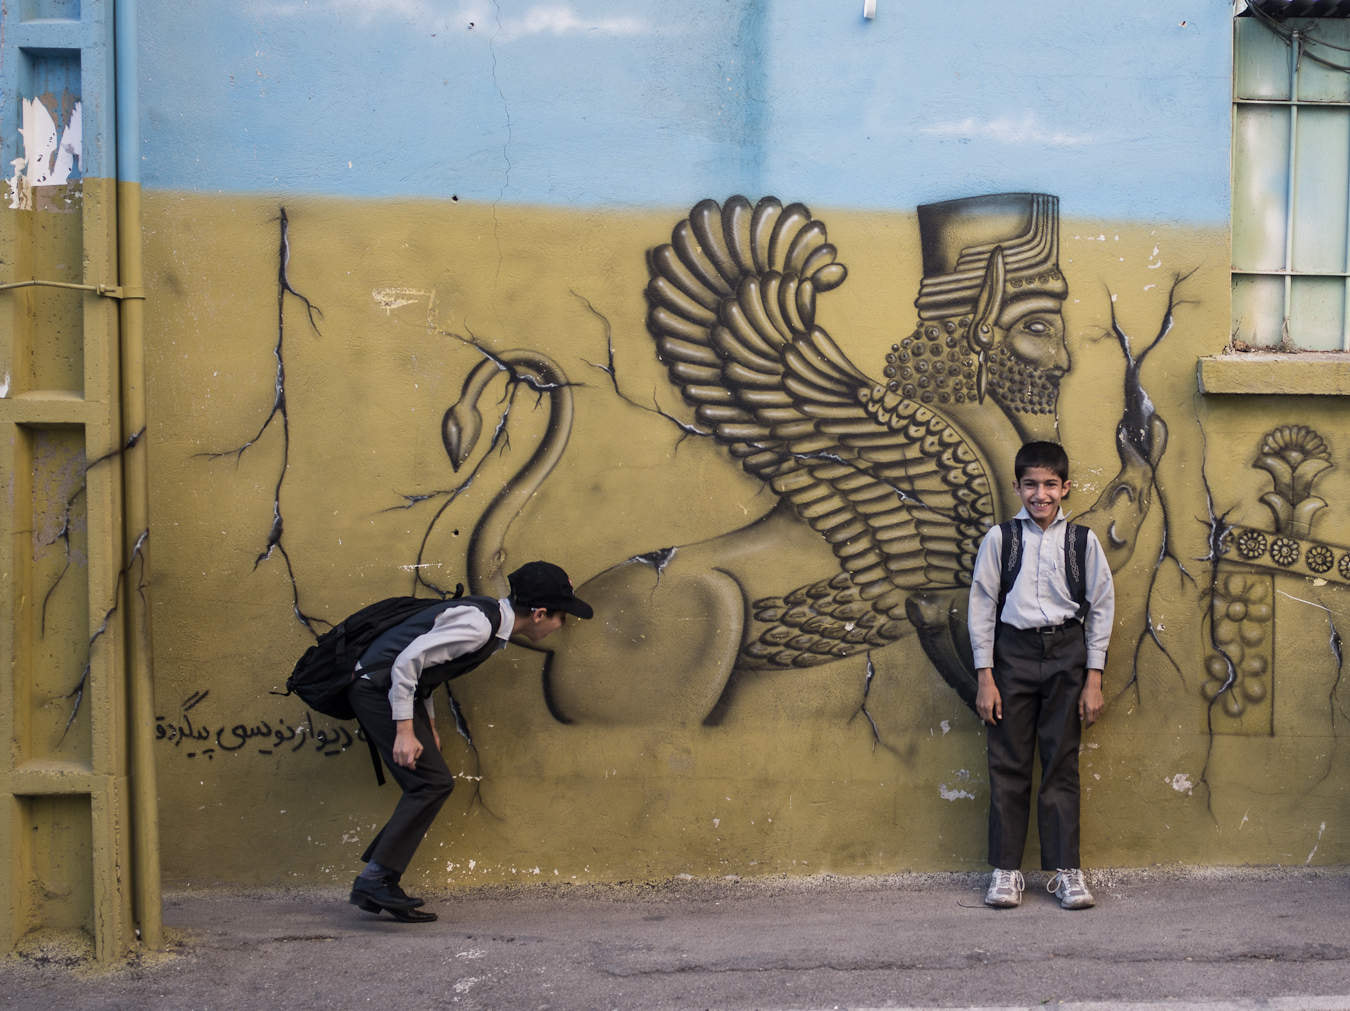 Photograph School boys & Mural, Shiraz, Iran by Chiaro Scurist on 500px